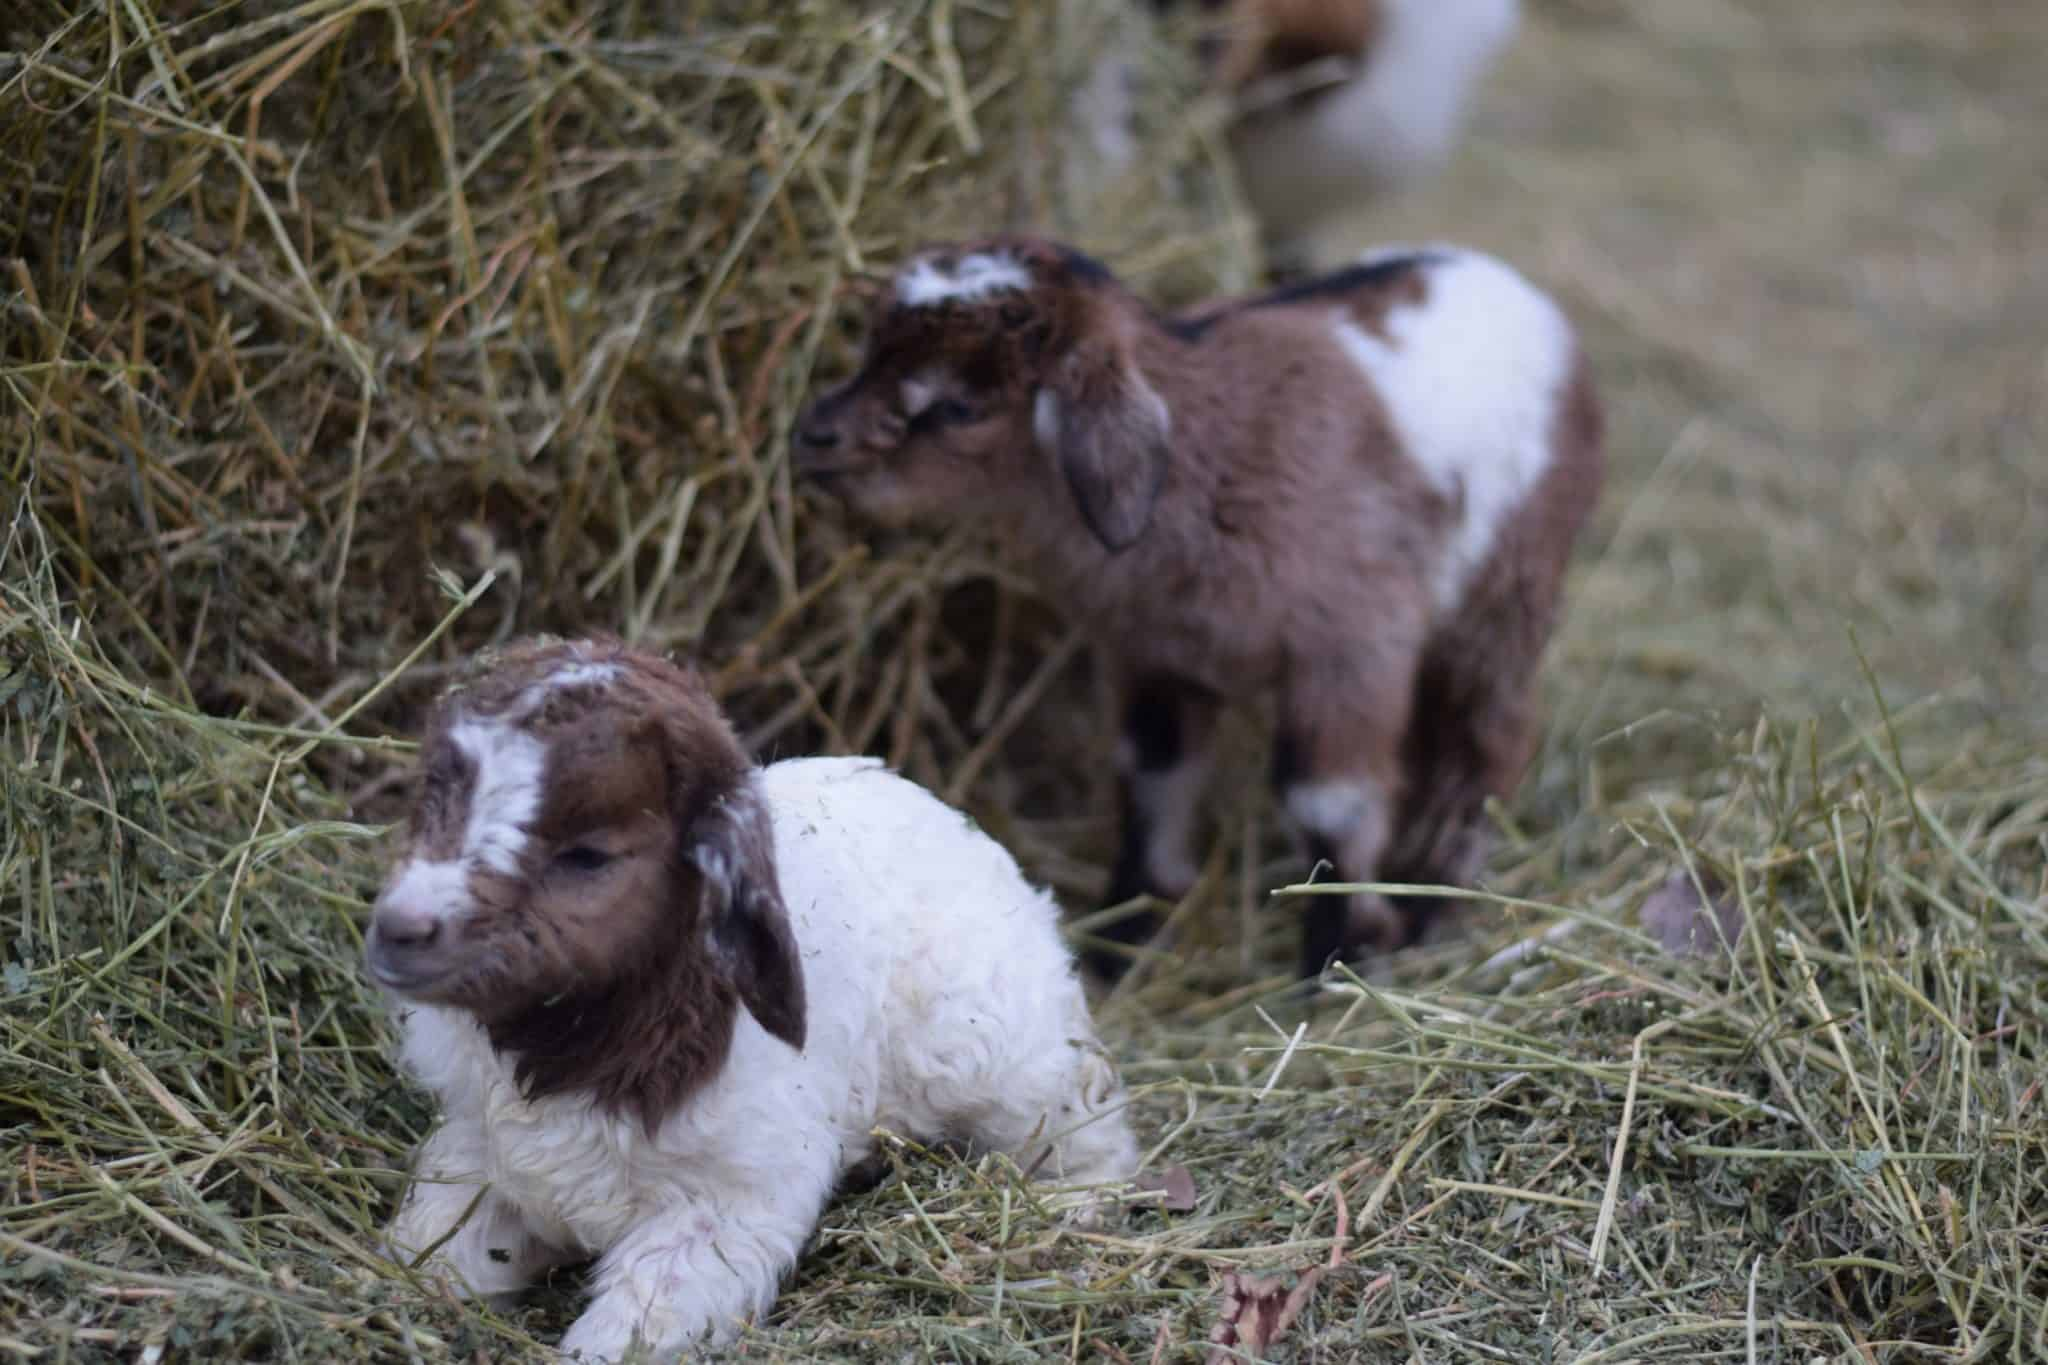 two newly born baby goats standing on hay bedding and next to a large hay bale.